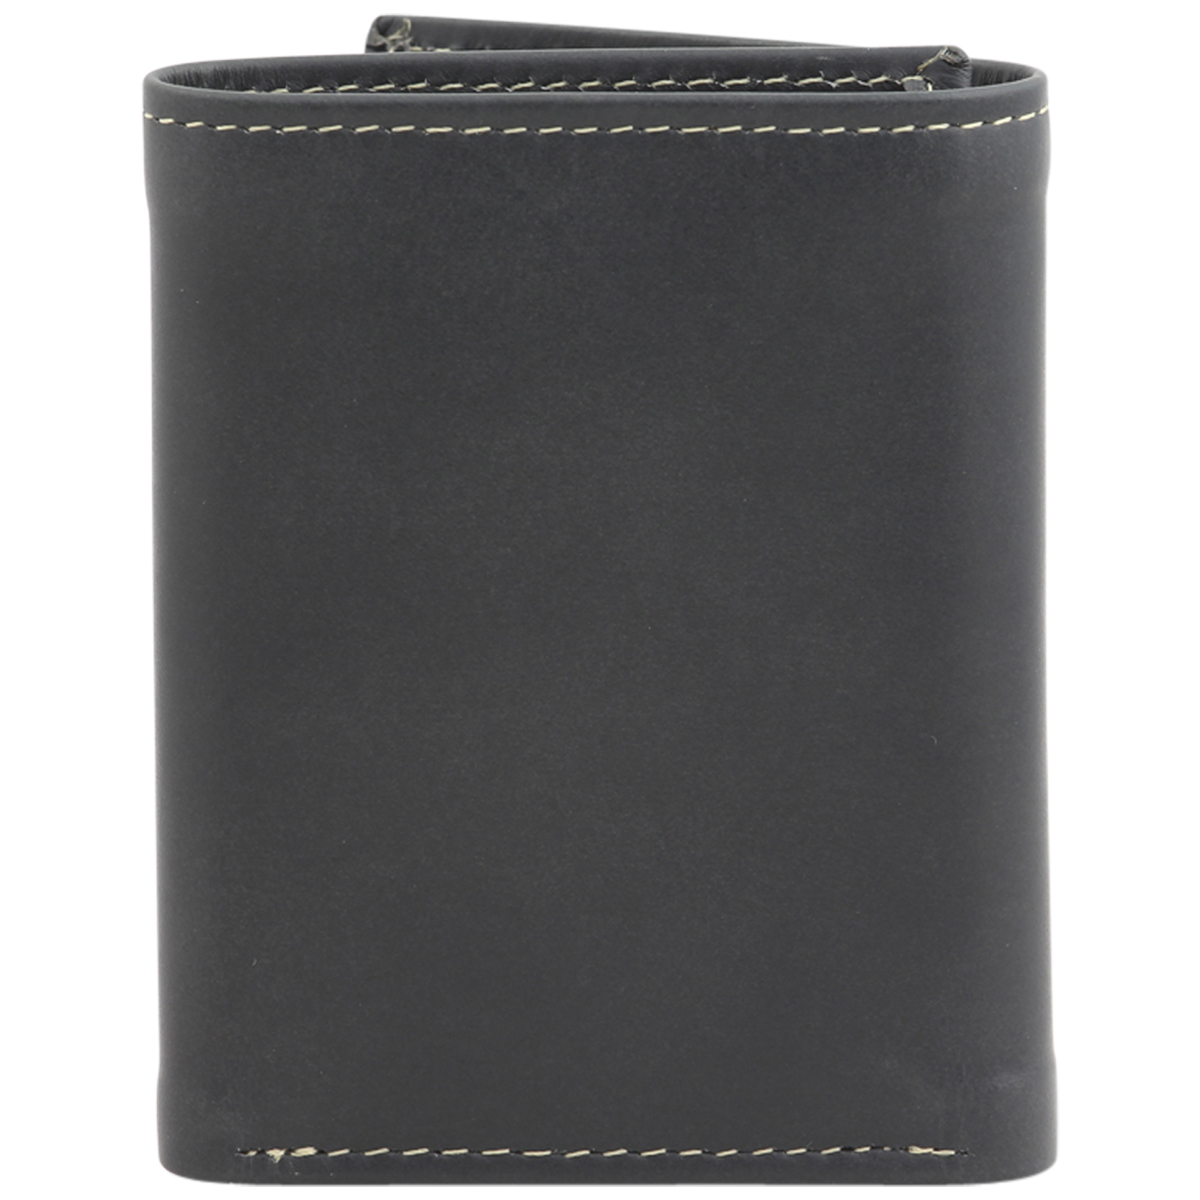 Timberland-Men-039-s-Cloudy-Genuine-Leather-Tri-Fold-Wallet thumbnail 5